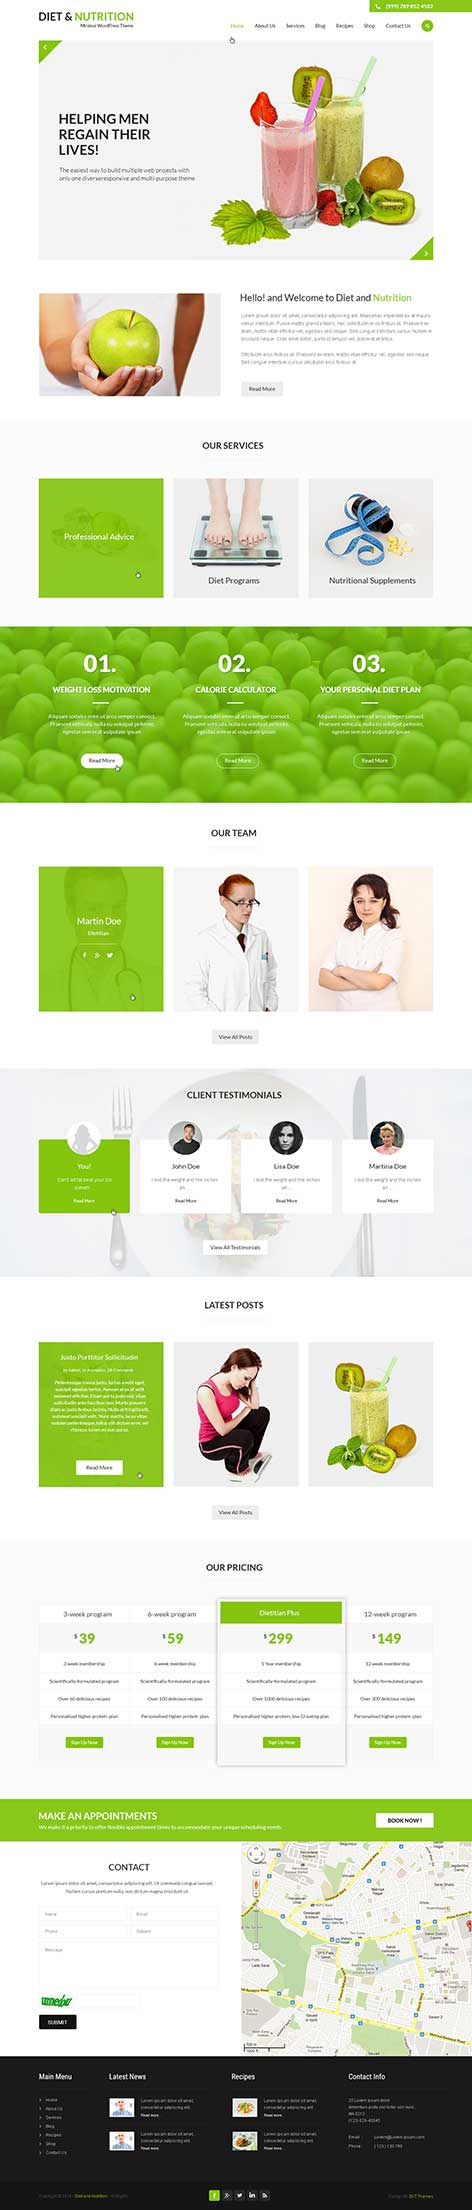 diet nutrition wordpress theme1 - Diet and Nutrition